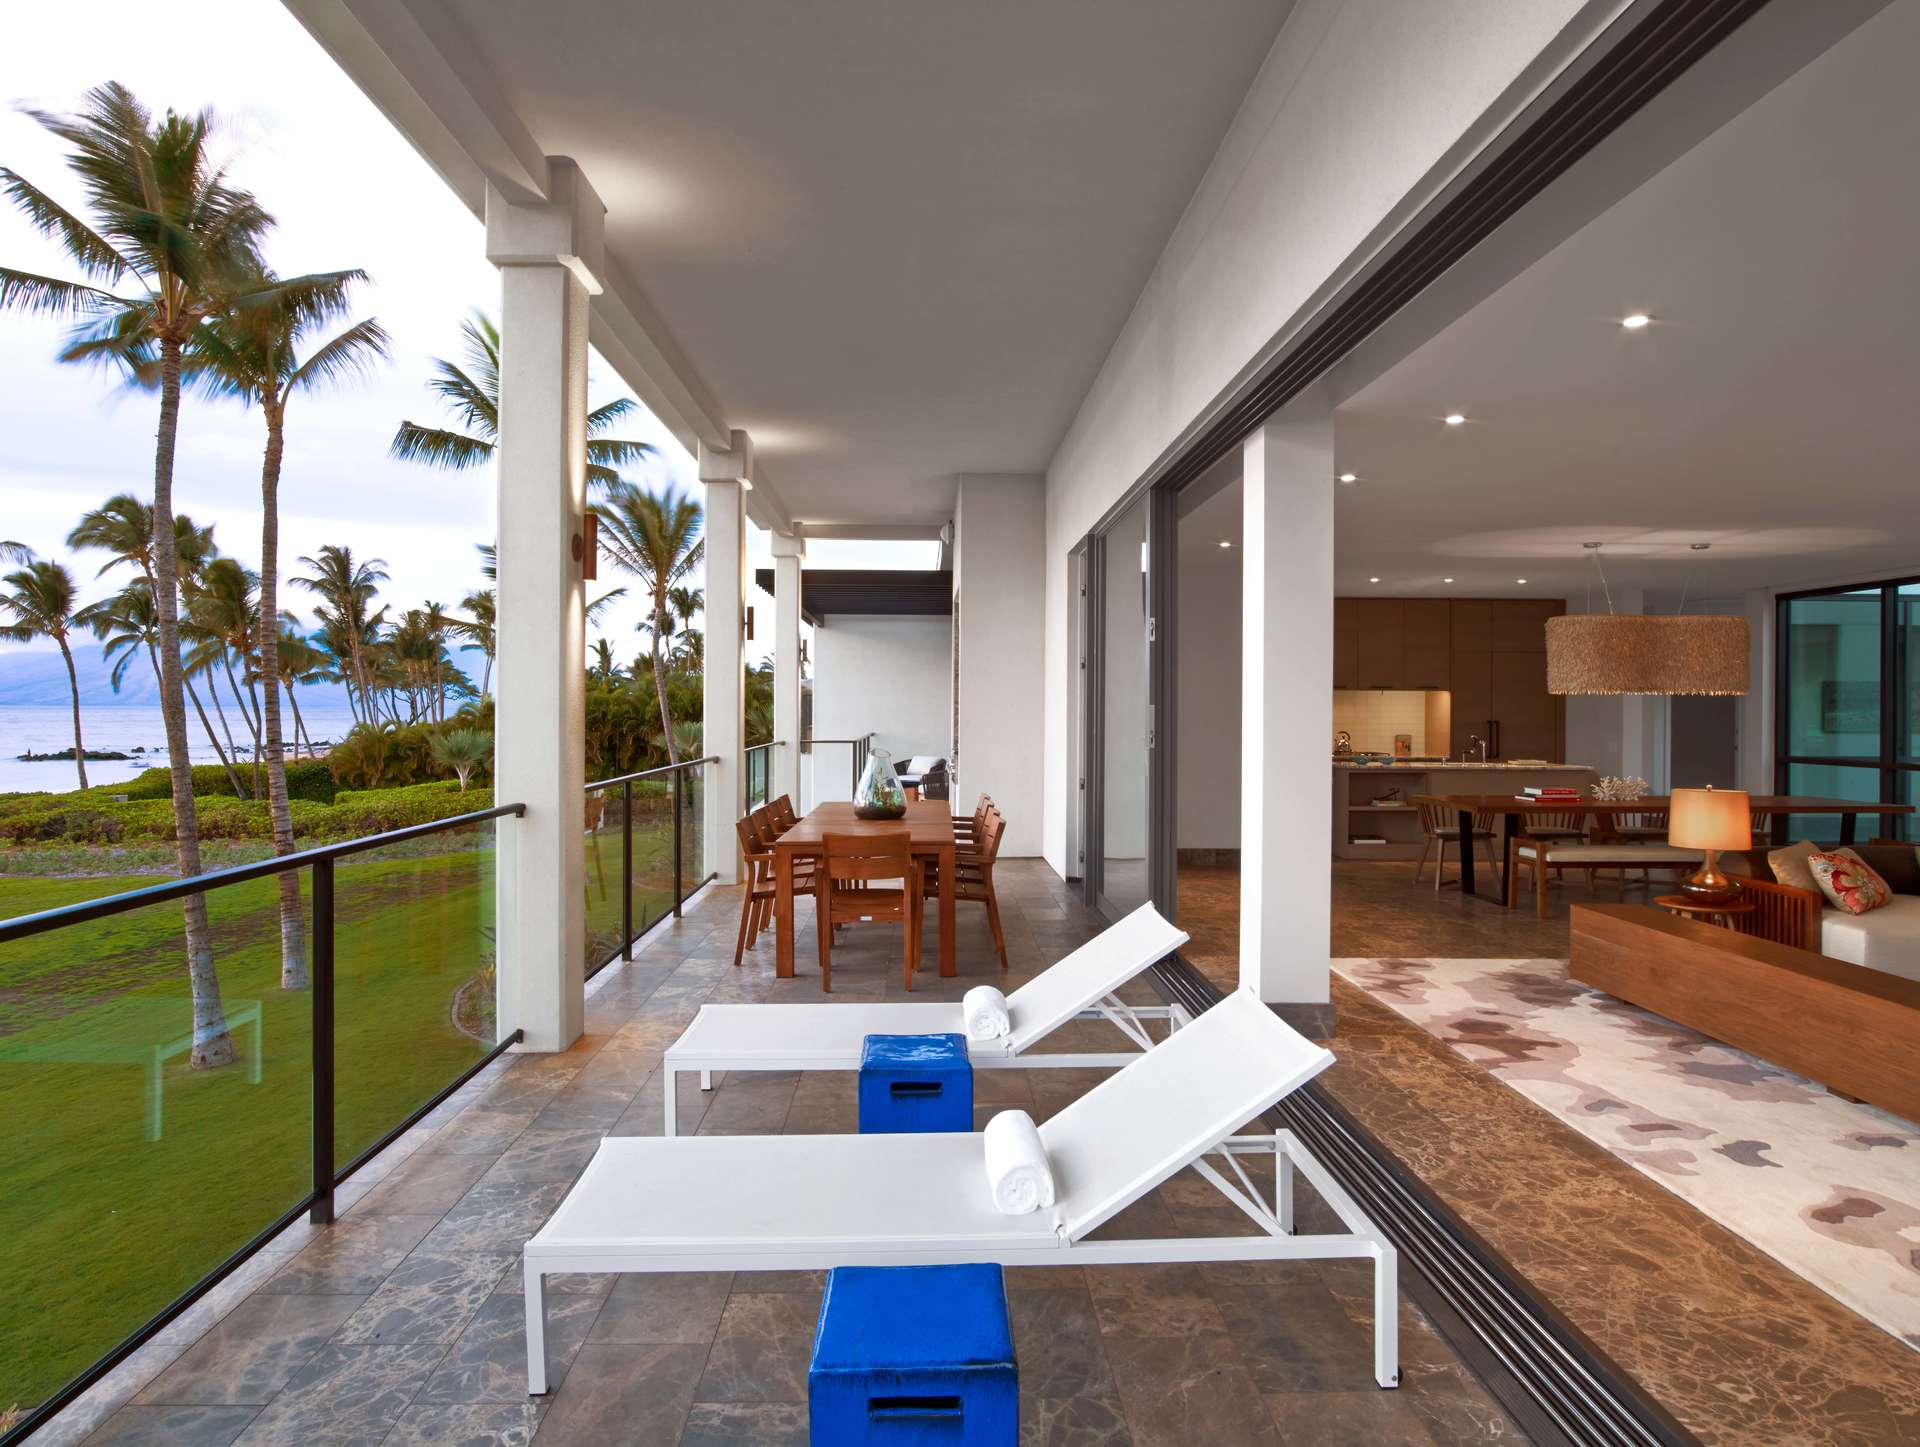 Luxury vacation rentals usa - Hawaii - Maui - Andaz maui wailea resort - Oceanfront Villa | 3 Bedrooms - Image 1/6